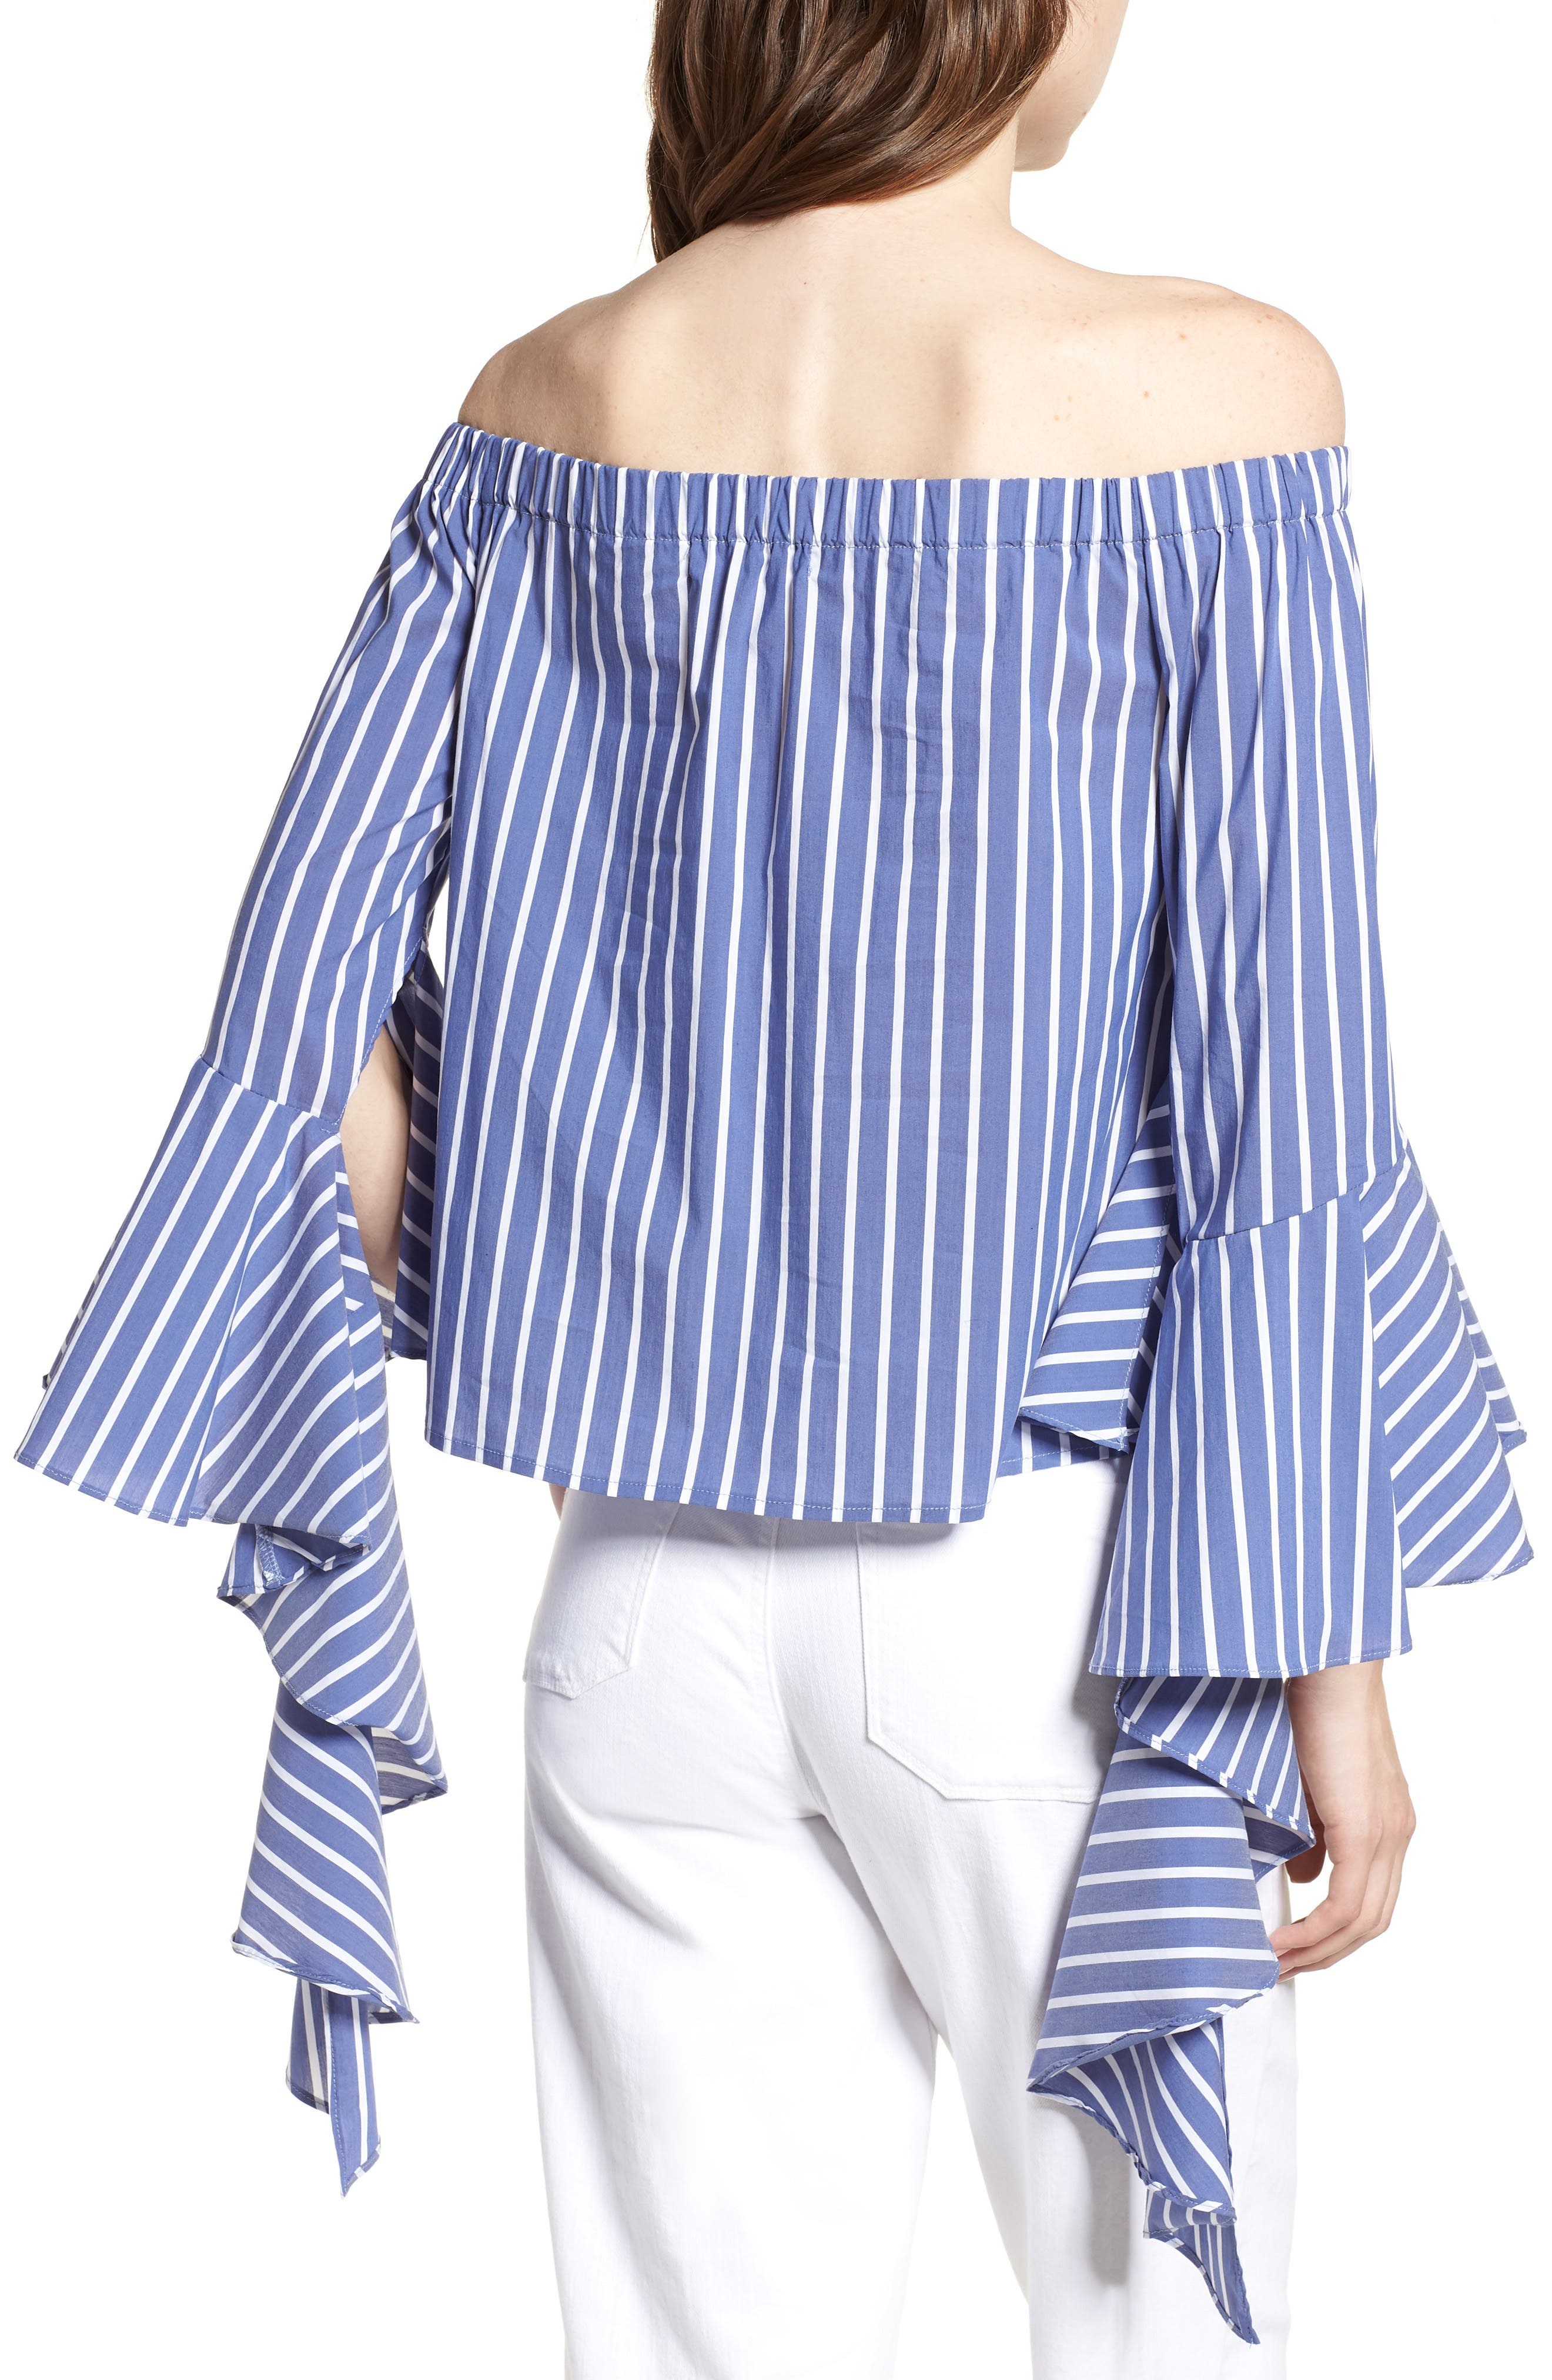 Bishop + Young Gigi Ruffle Sleeve Off the Shoulder Top,                             Alternate thumbnail 2, color,                             Blue White Stripe